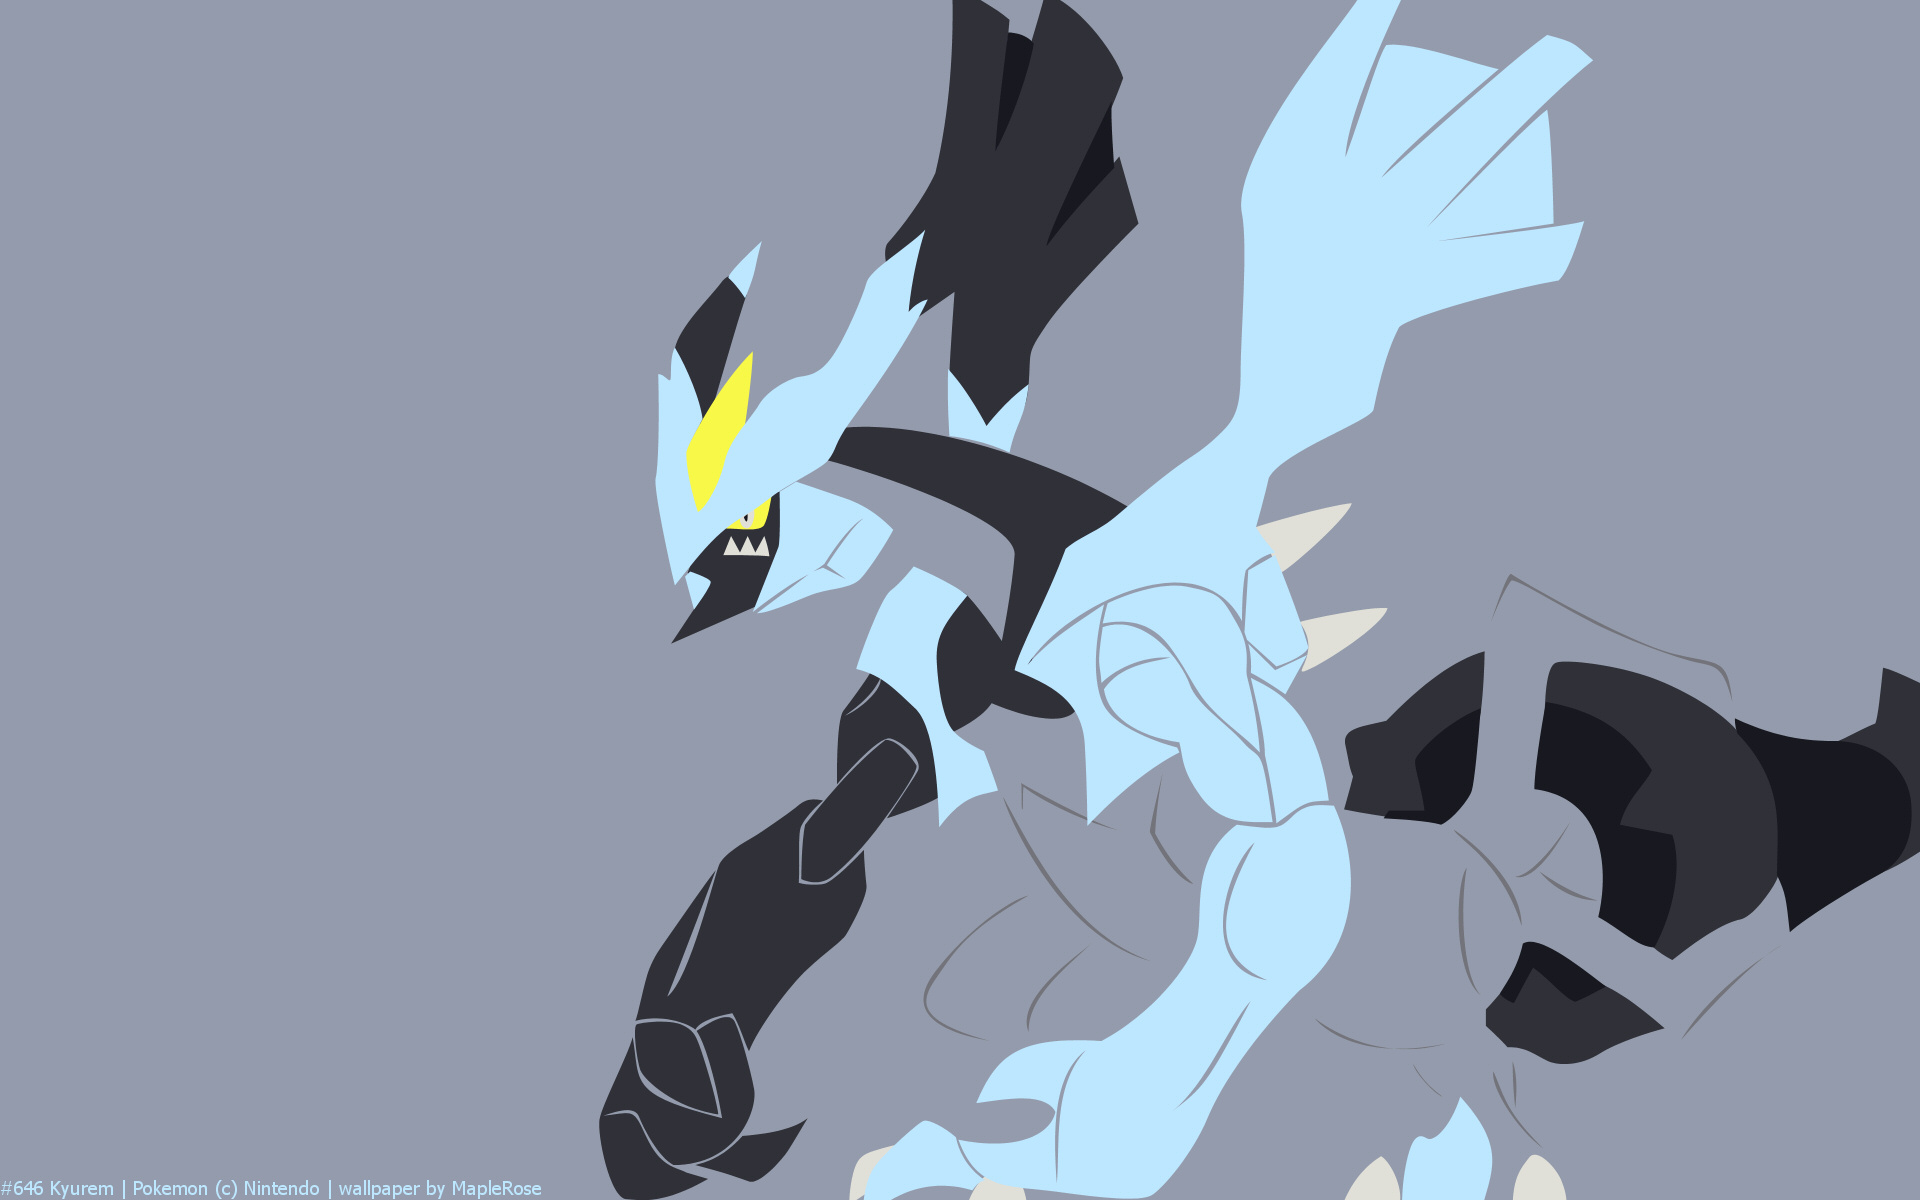 How can kyurem learn ice burn - answers.com